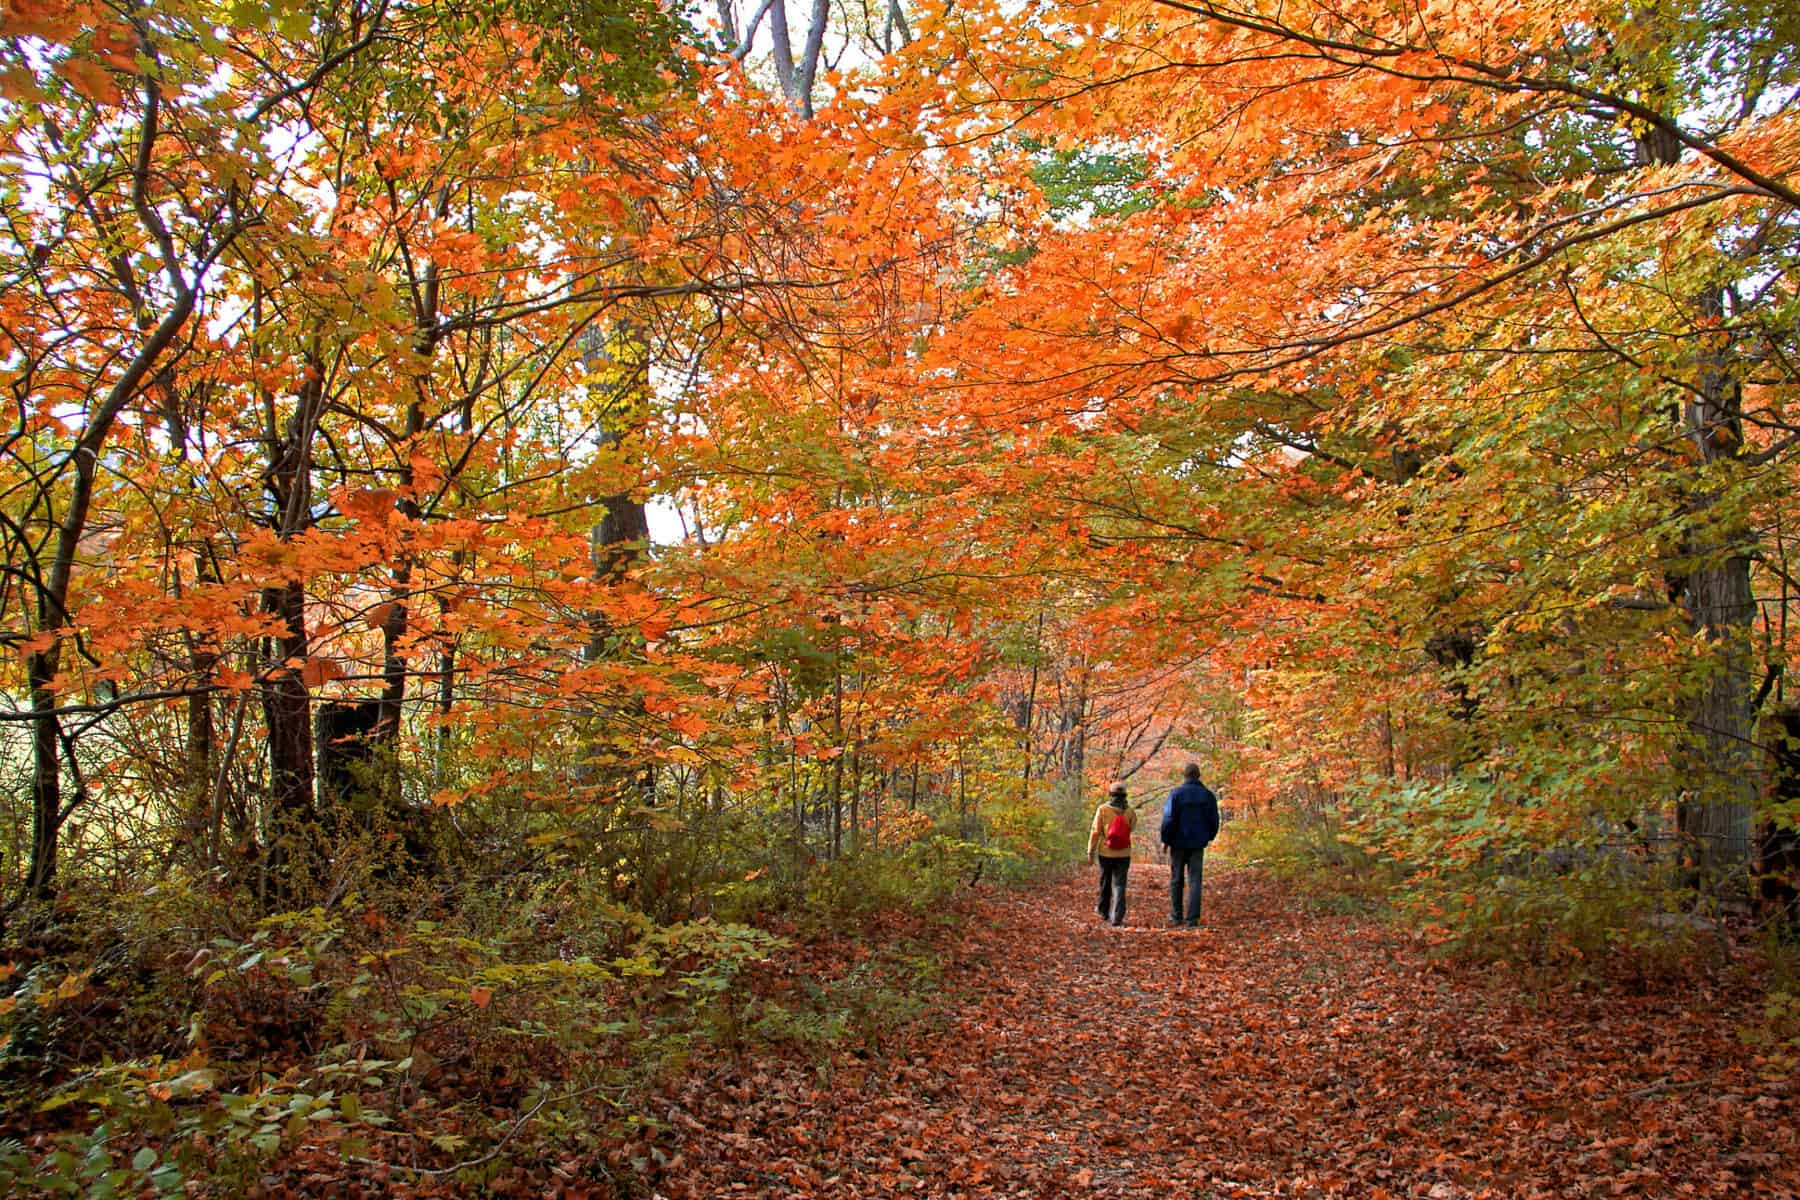 Adult and child strolling through the Berkshires forest in Autumn